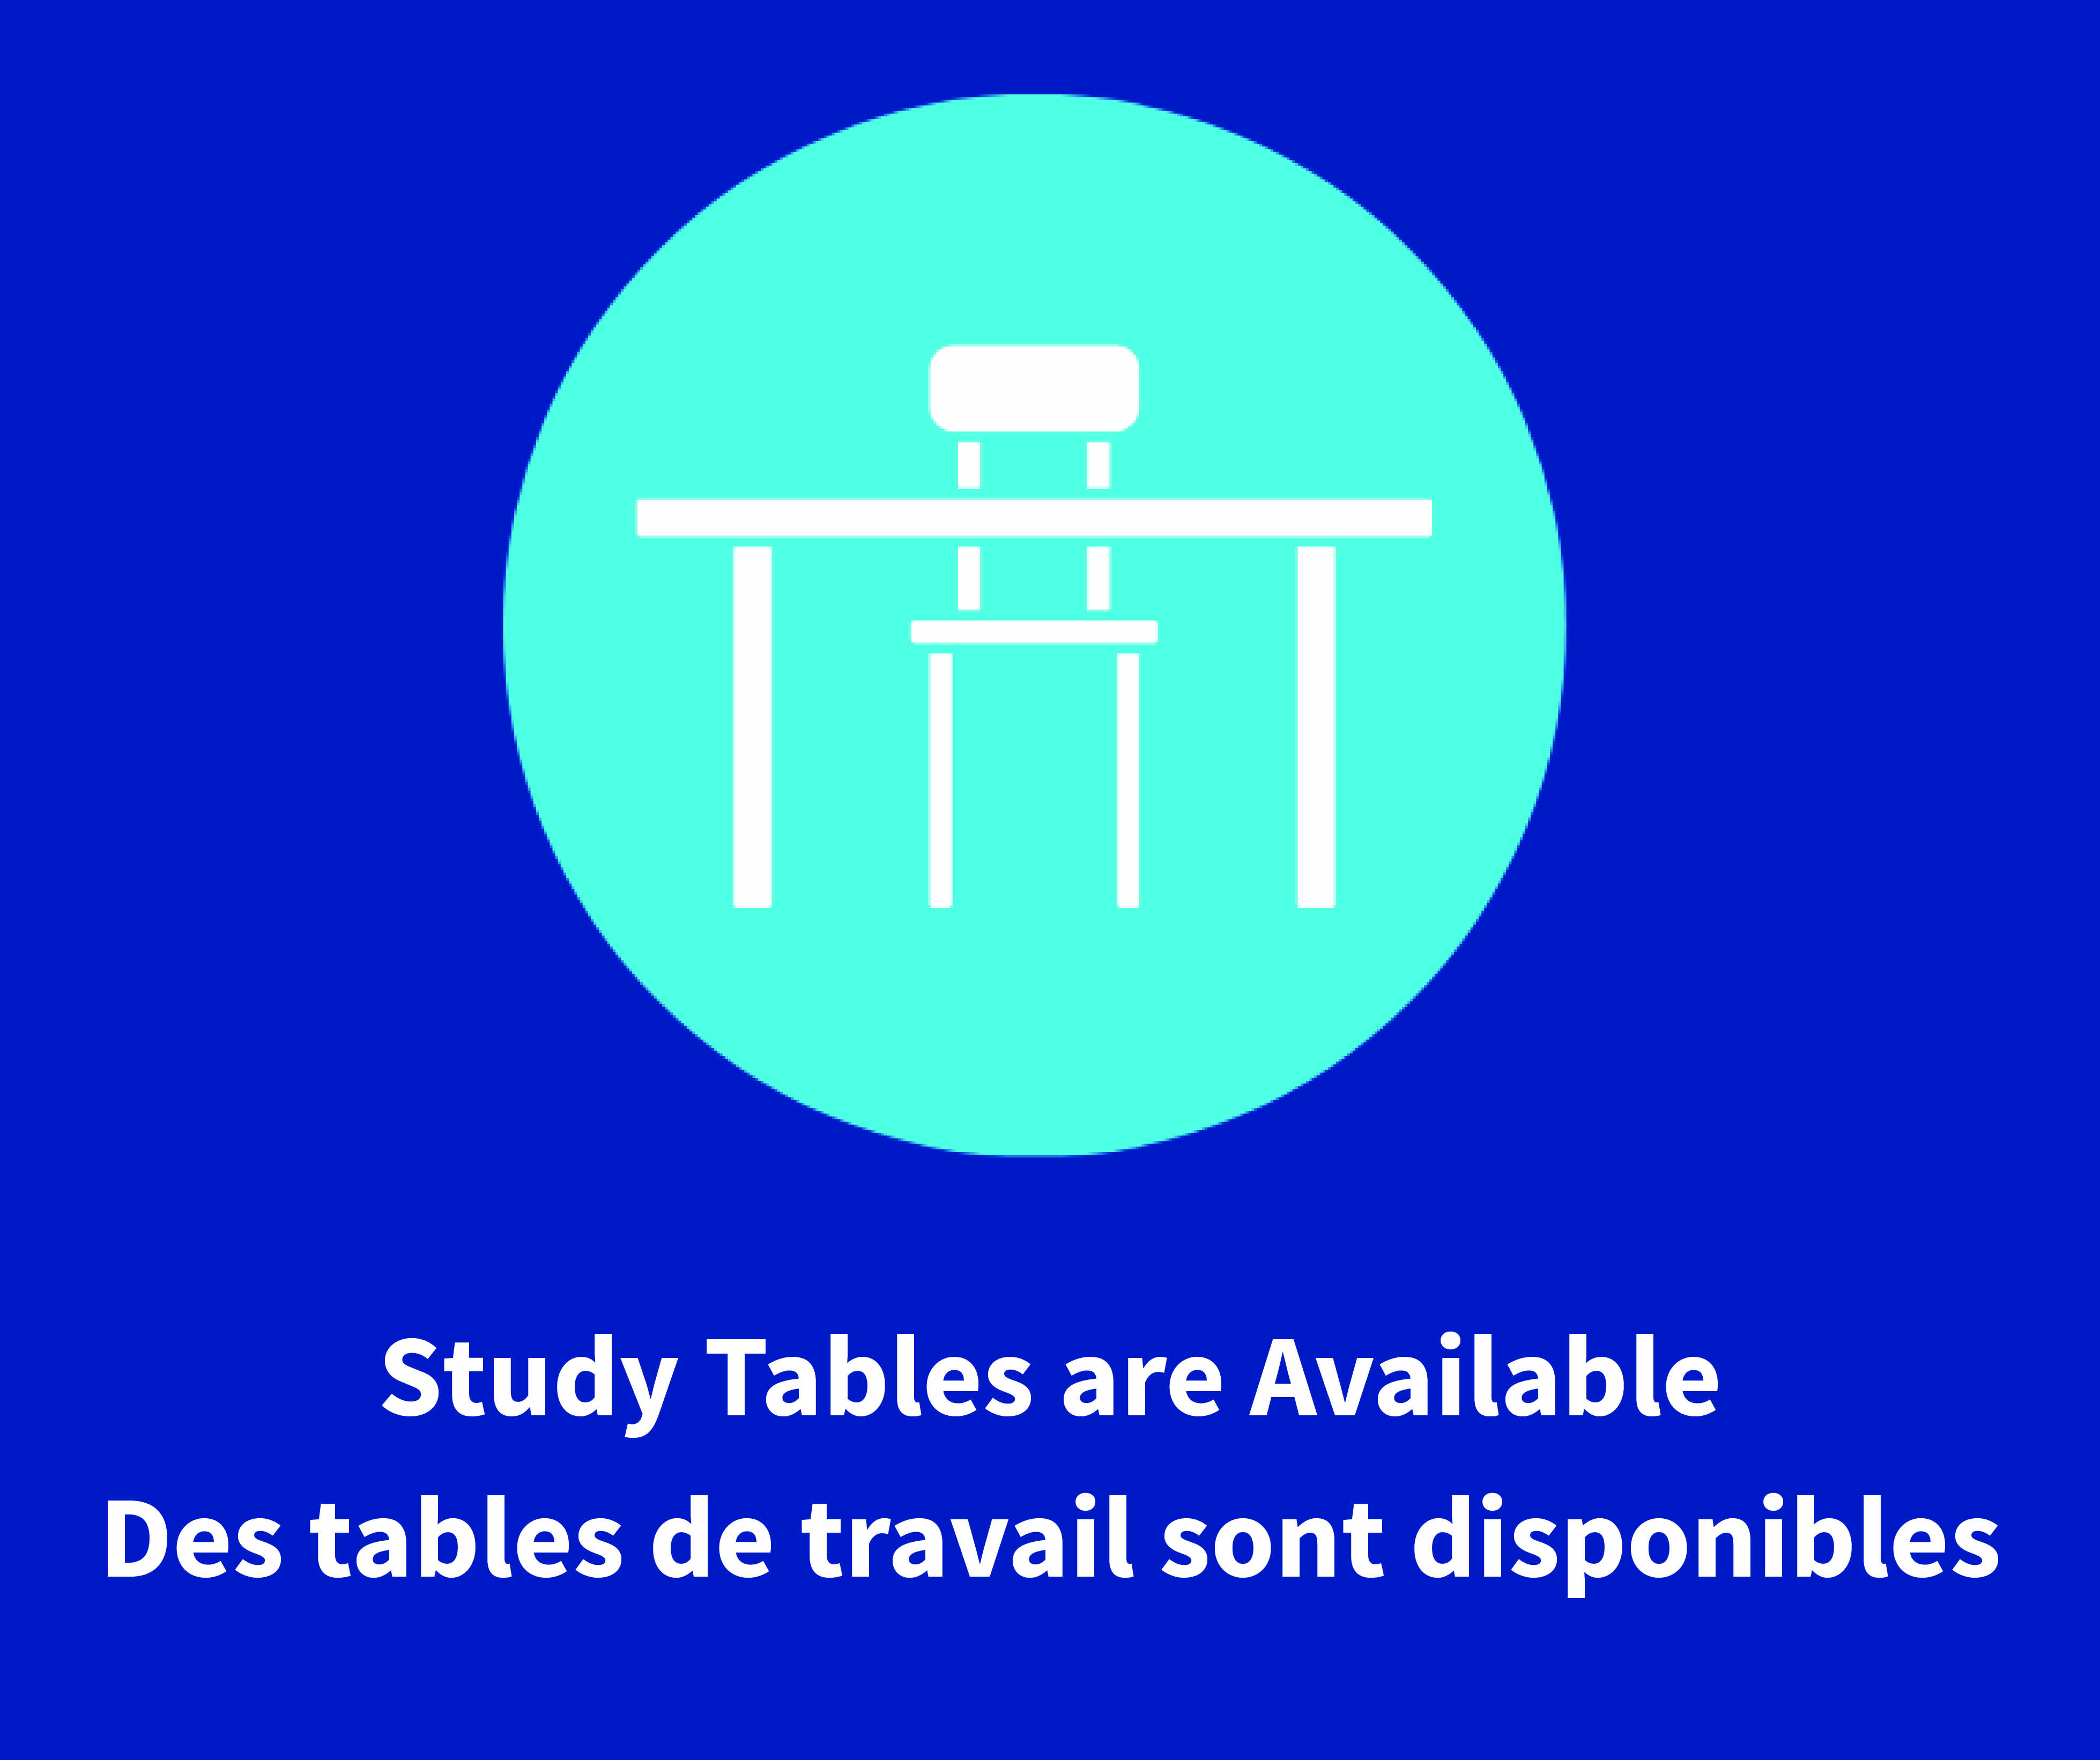 Study tables are available